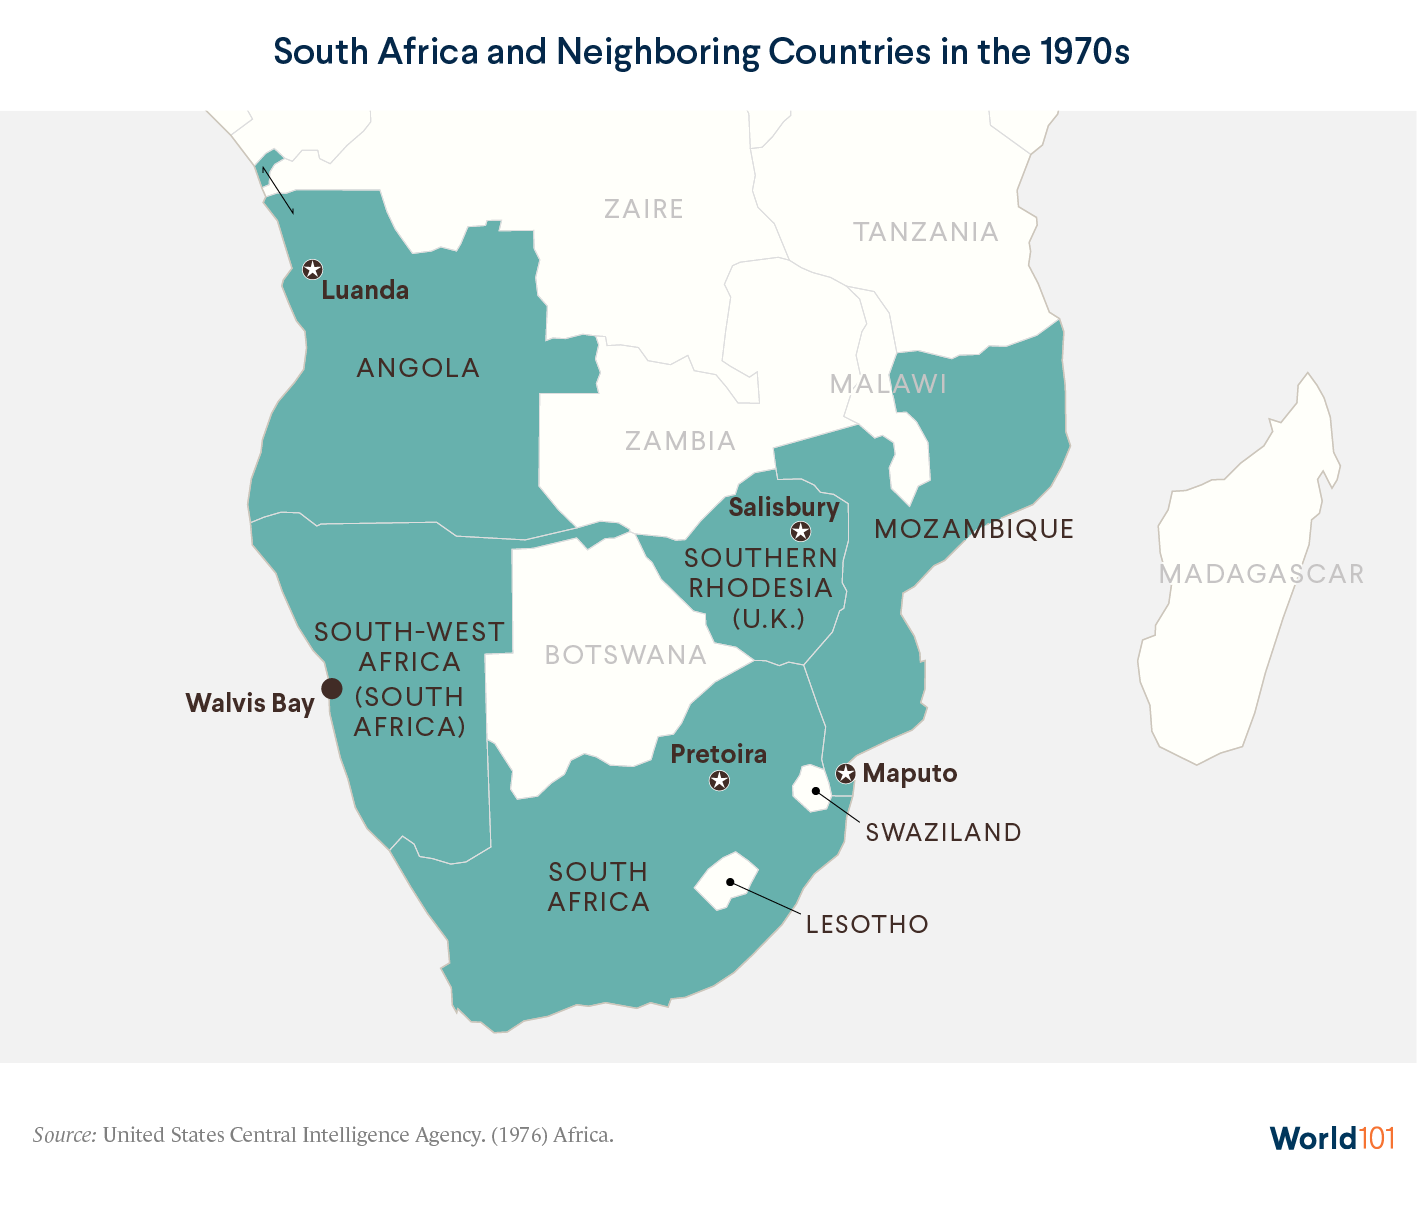 South Africa and Neighboring Countries in the 1970s